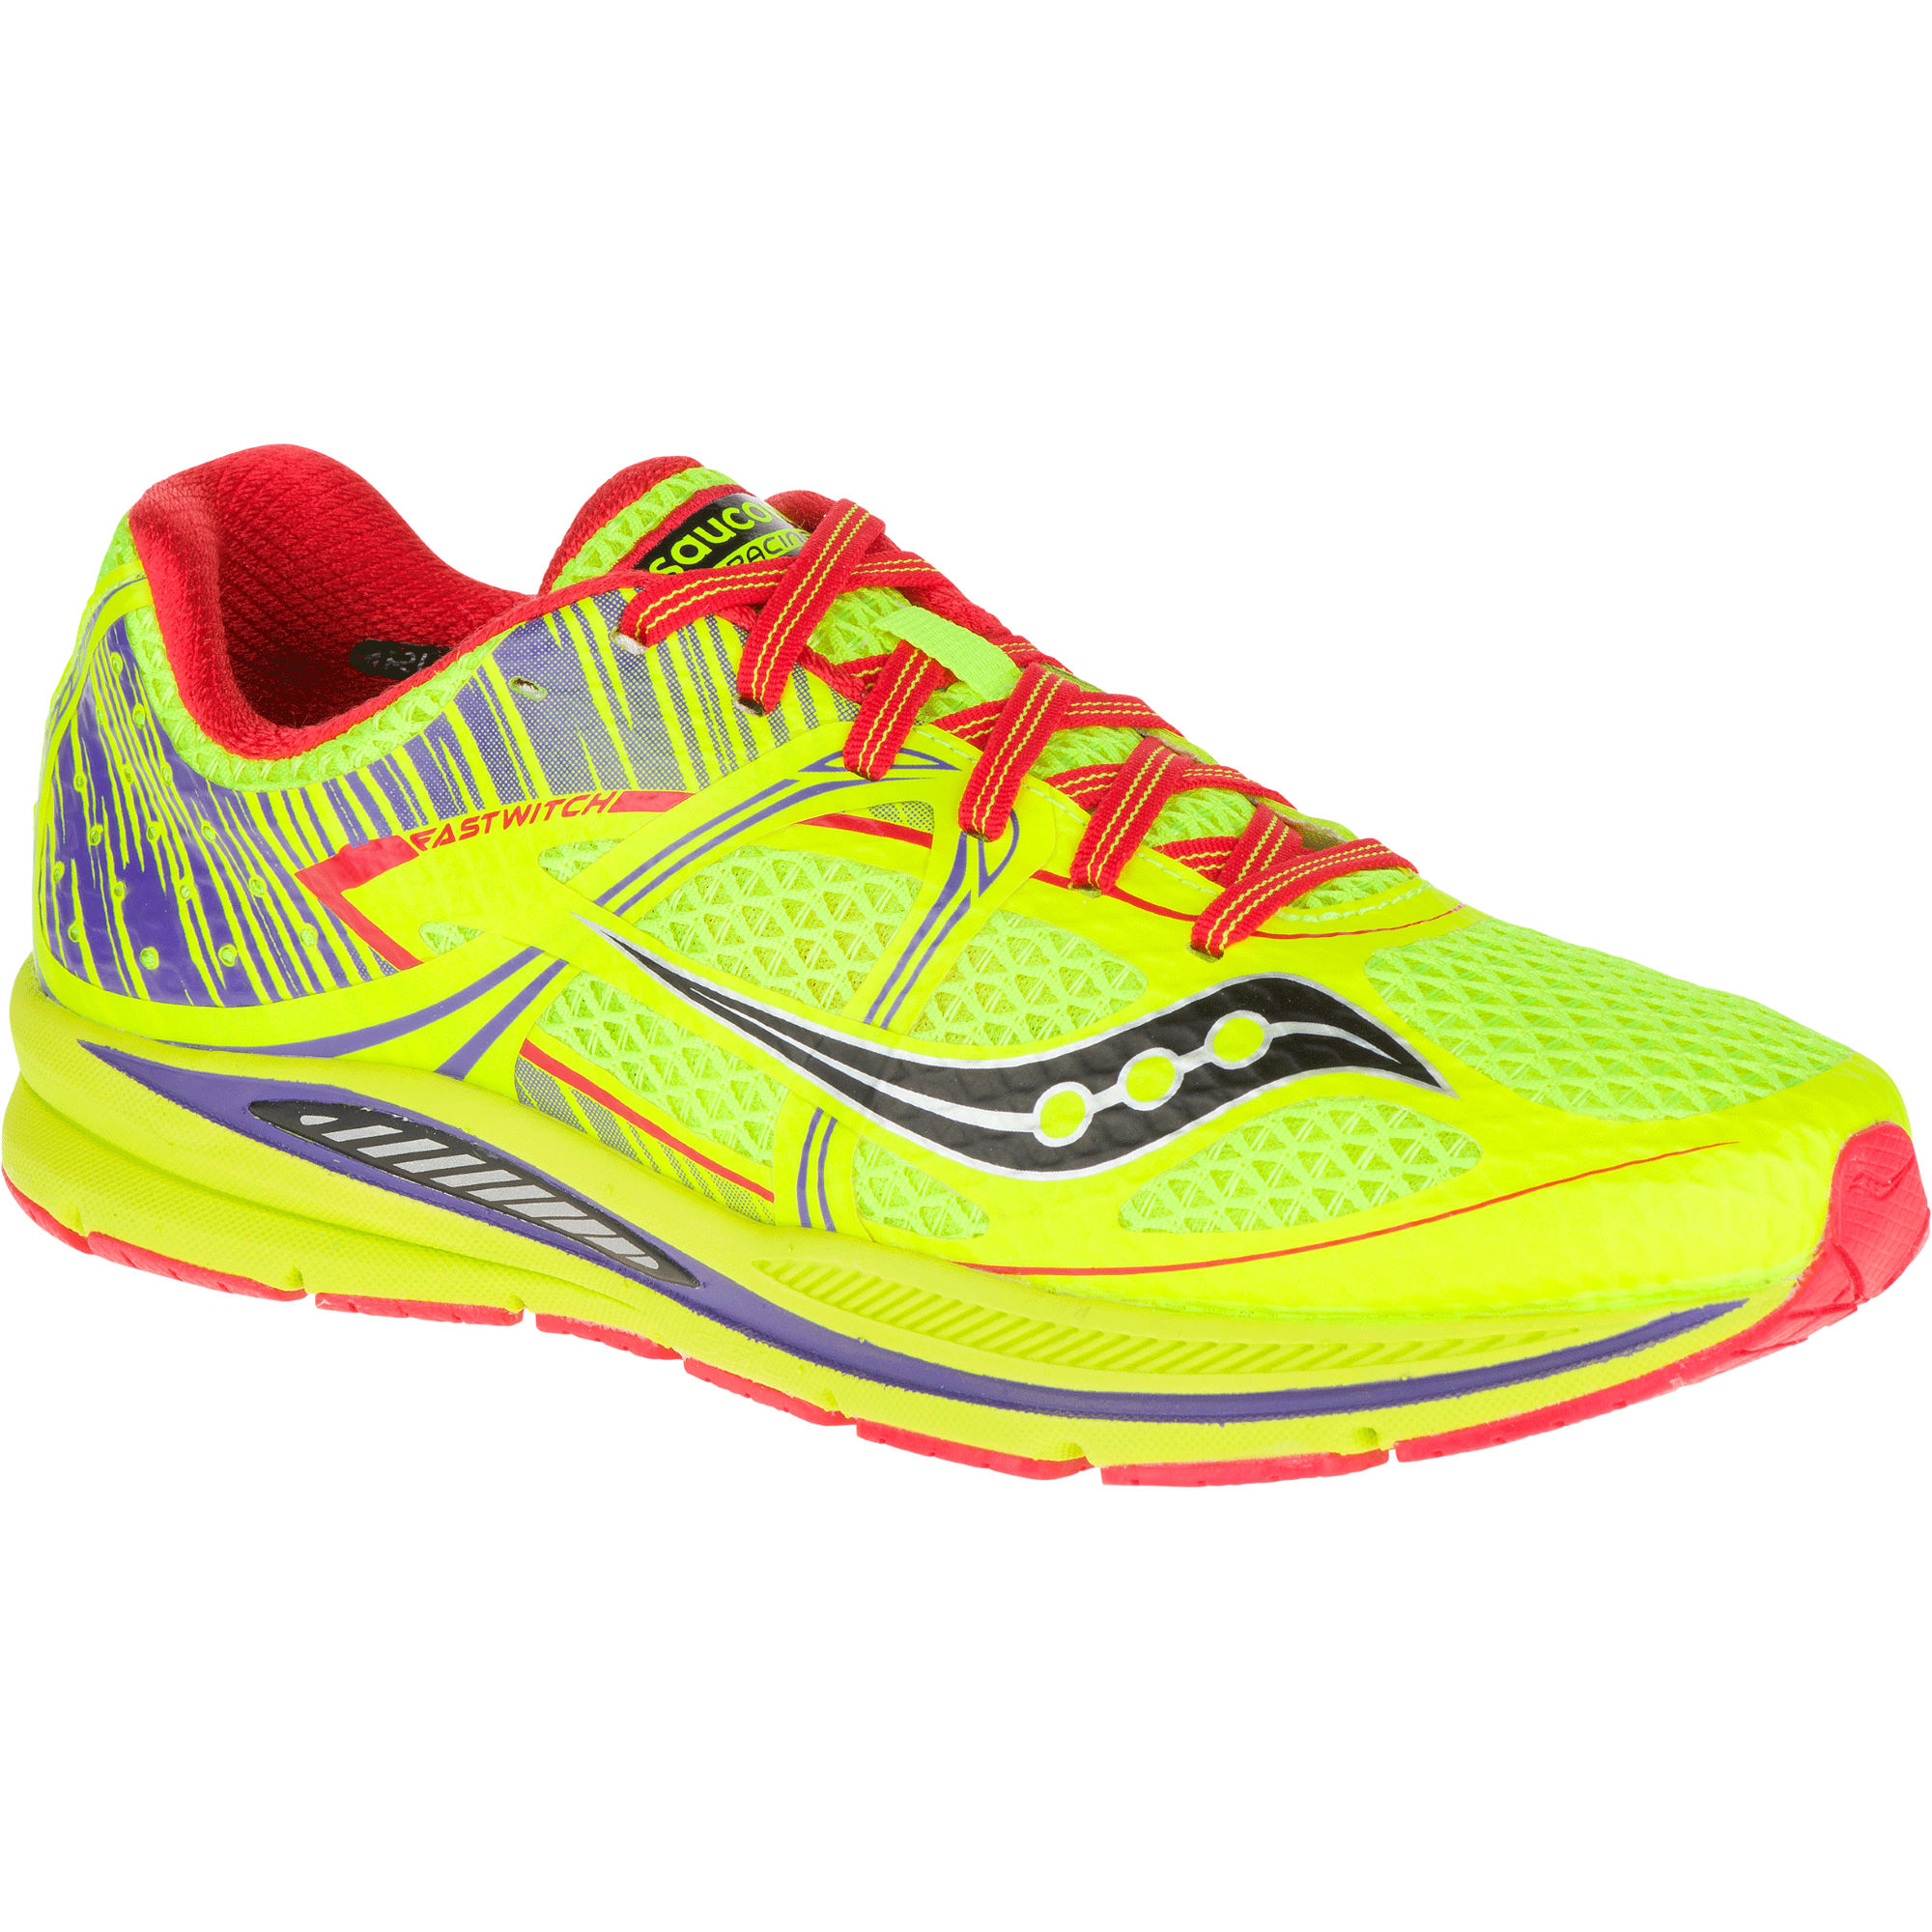 Top Of The Line Women S Saucony Running Shoes